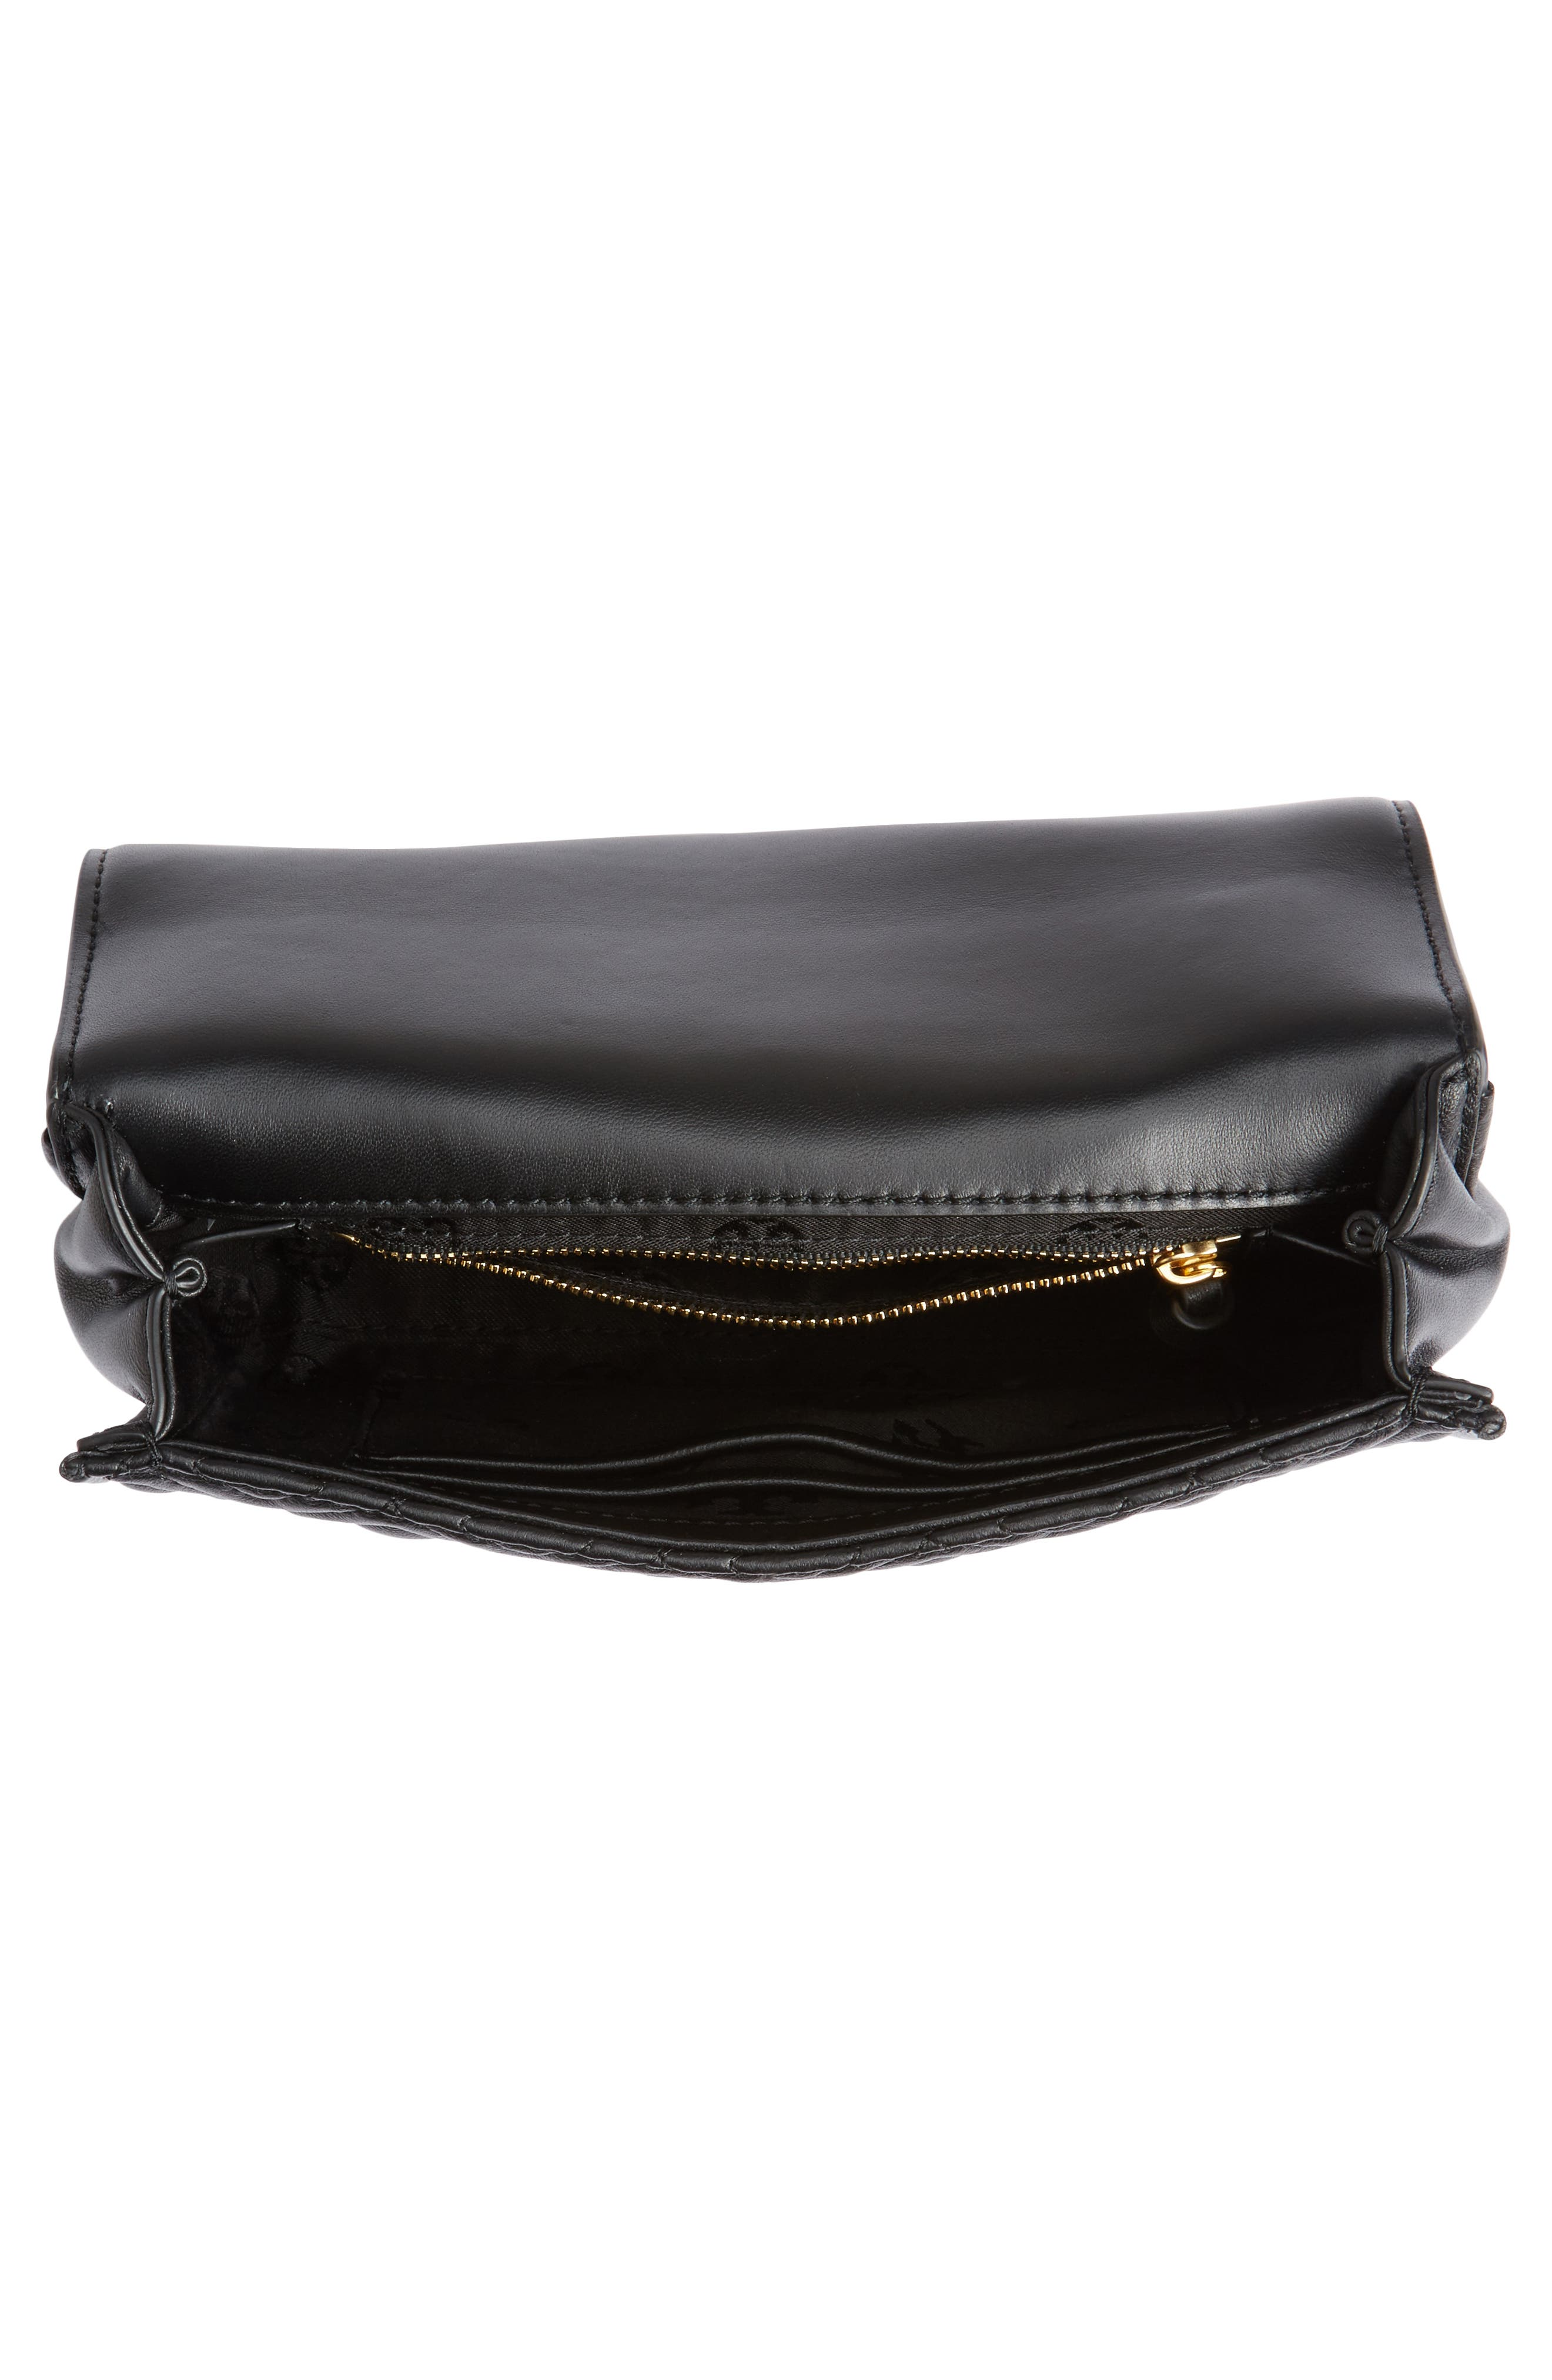 TORY BURCH, Small Fleming Leather Convertible Shoulder Bag, Alternate thumbnail 5, color, BLACK